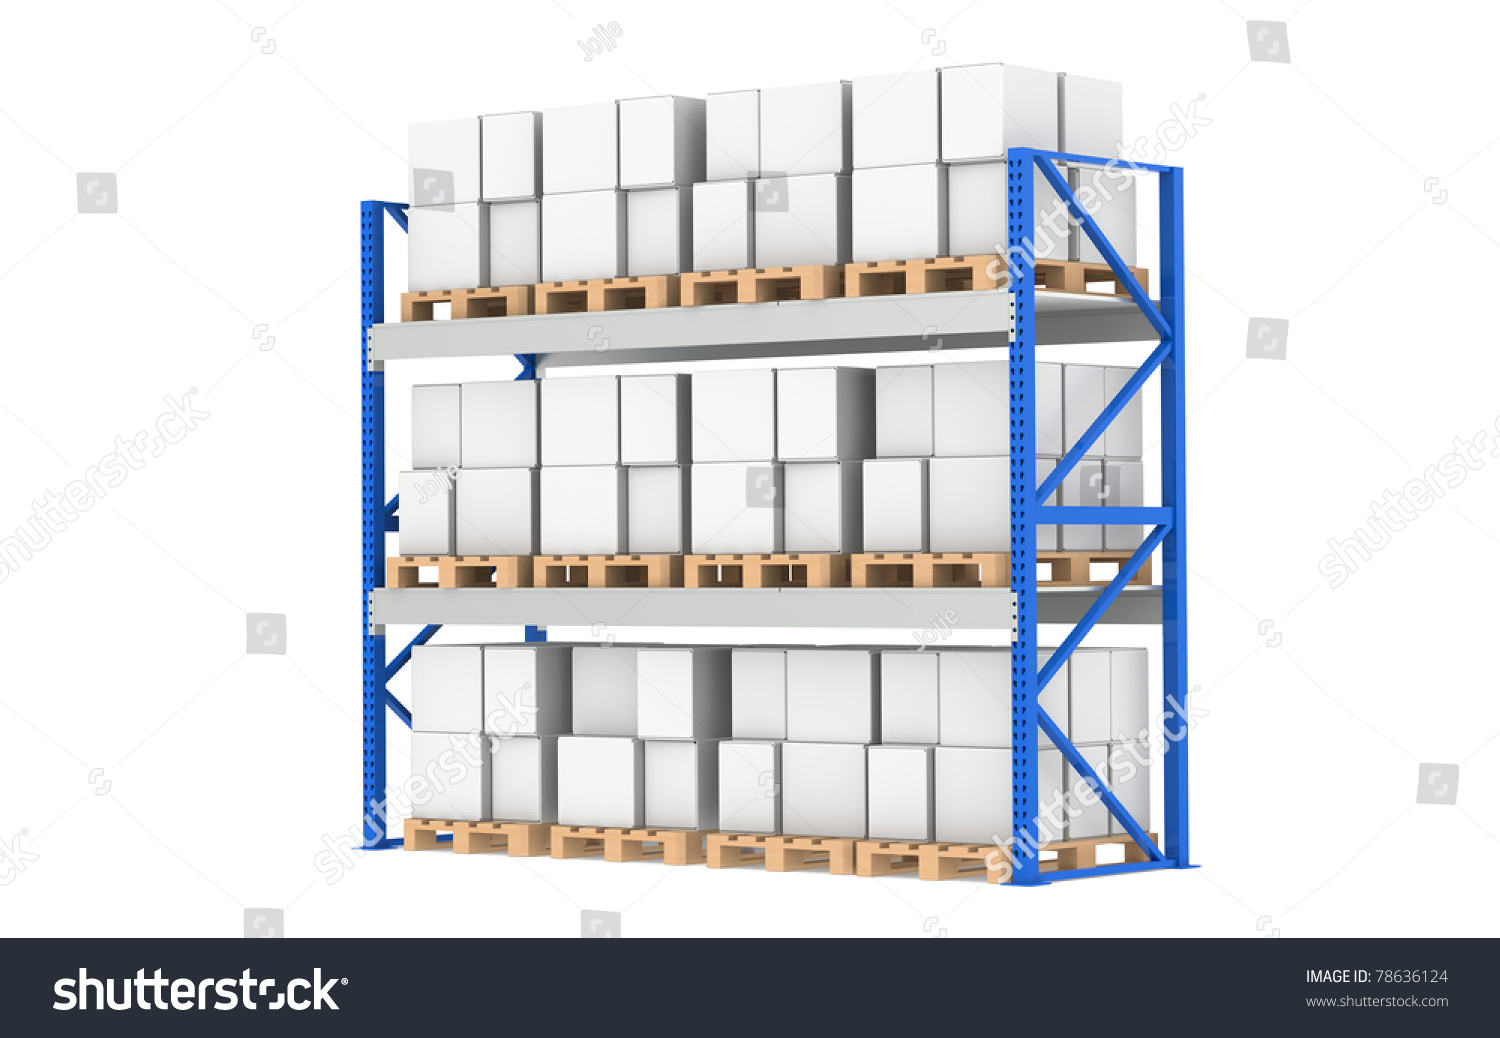 ensure safer racking accessories warehouse well as rack shelving environment working